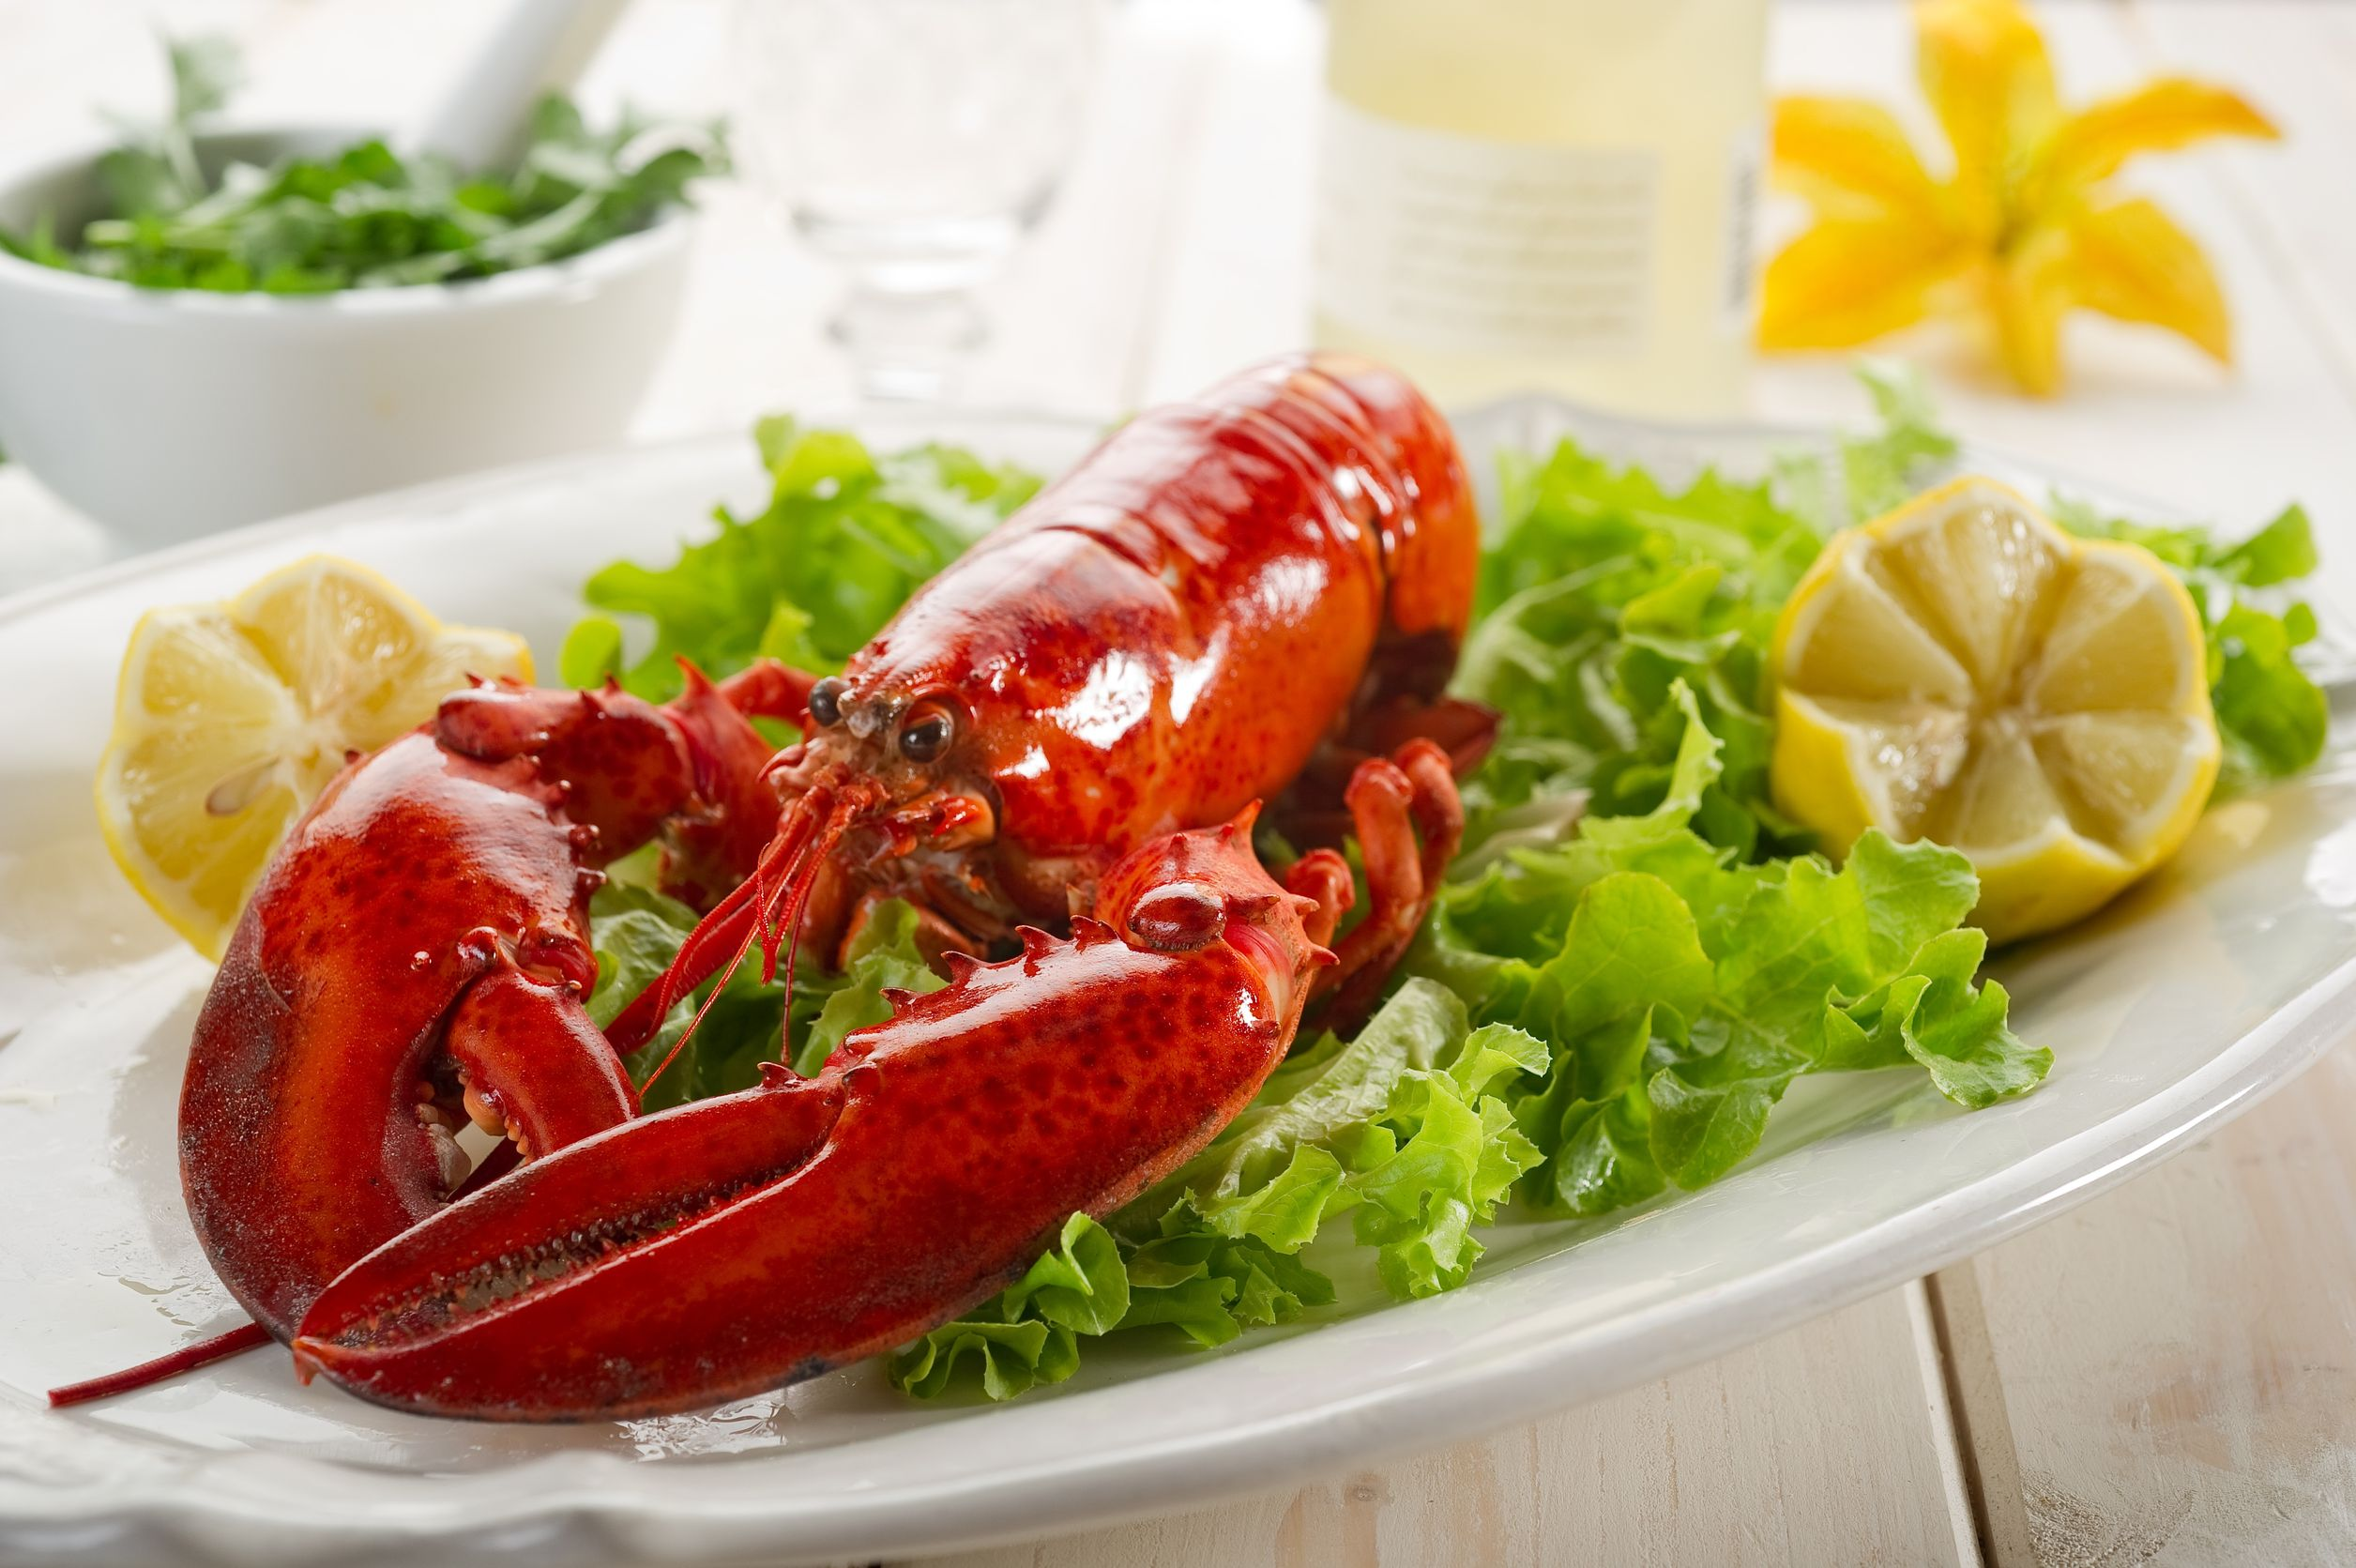 new zealand lobster on a plate 123rf